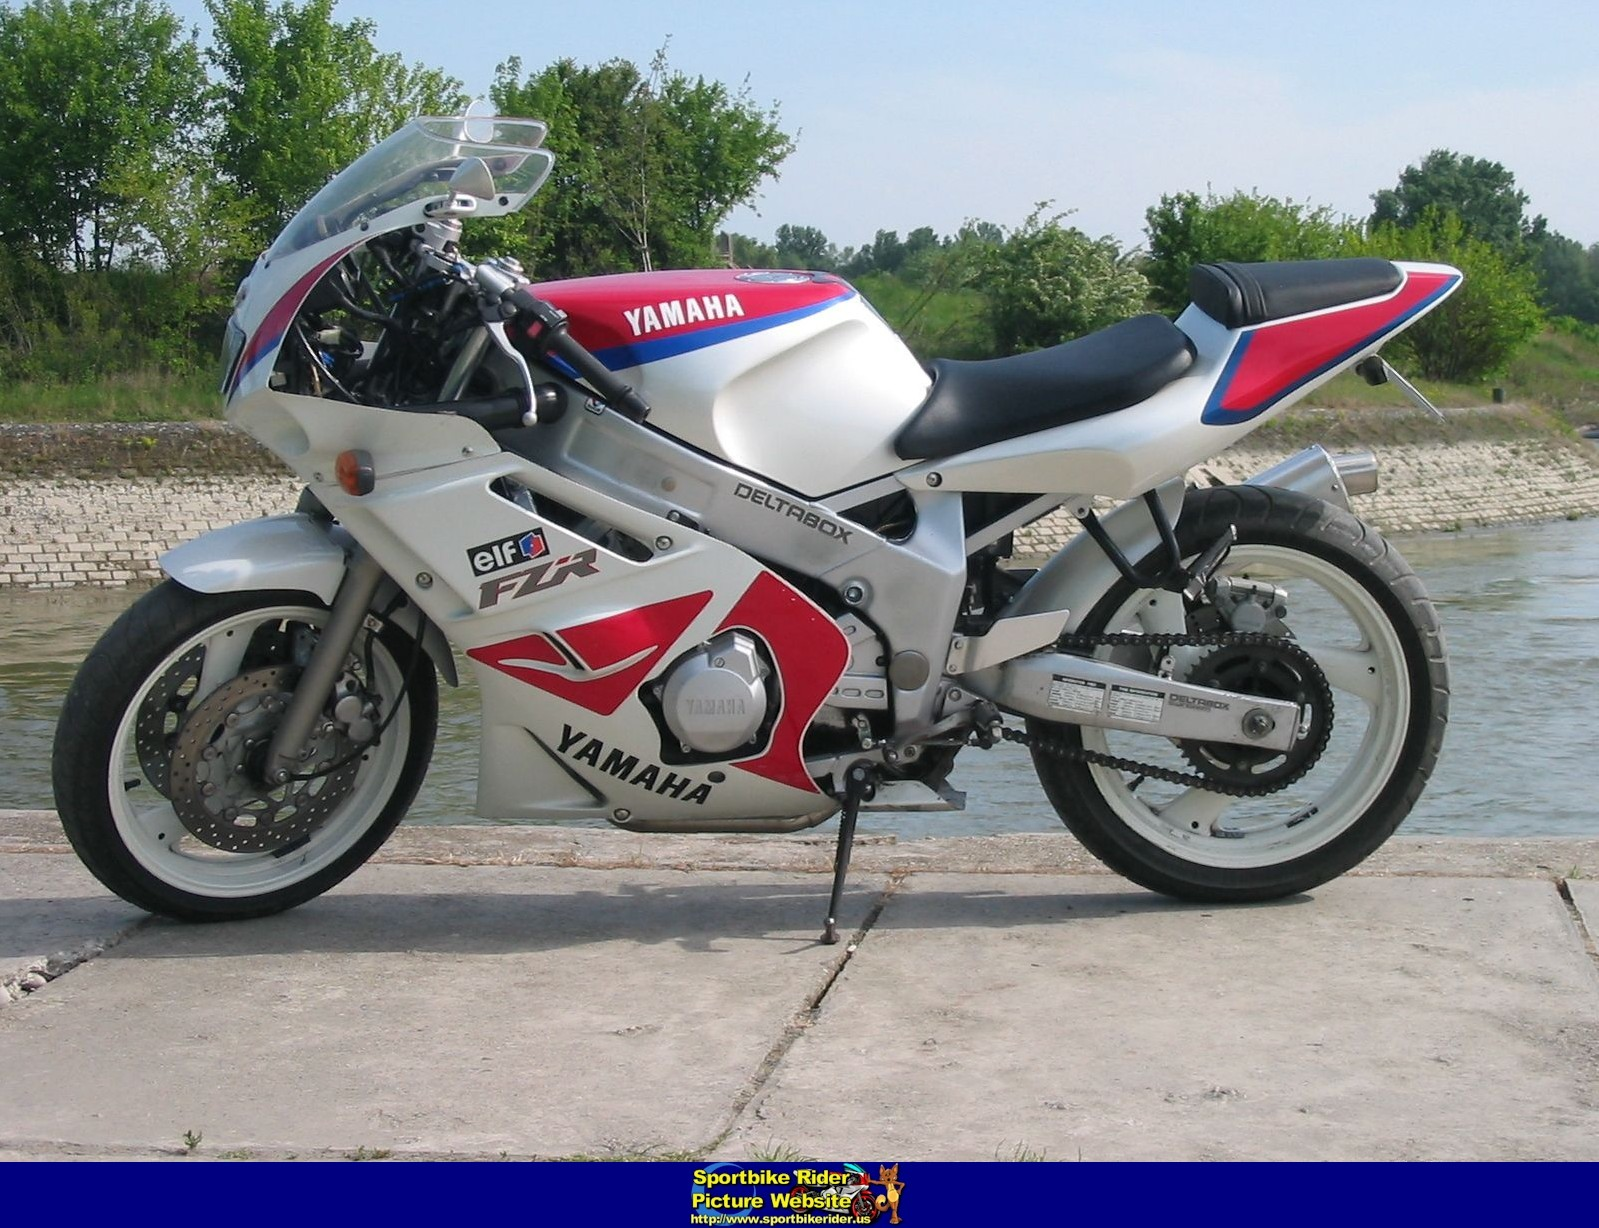 What Are The Dimensions Of A Yamaha Fzr